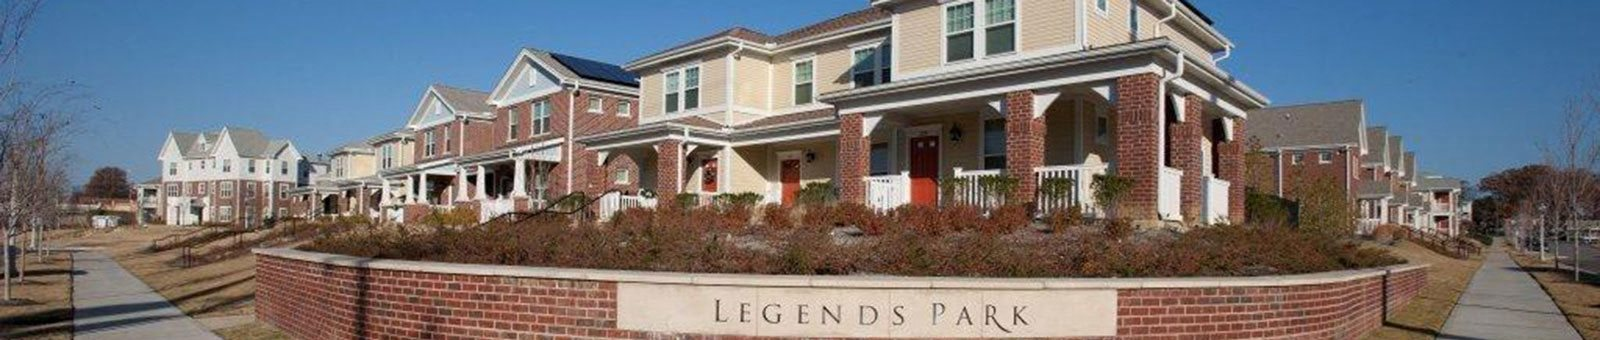 Exterior of Legends Park Apartments, Memphis, TN